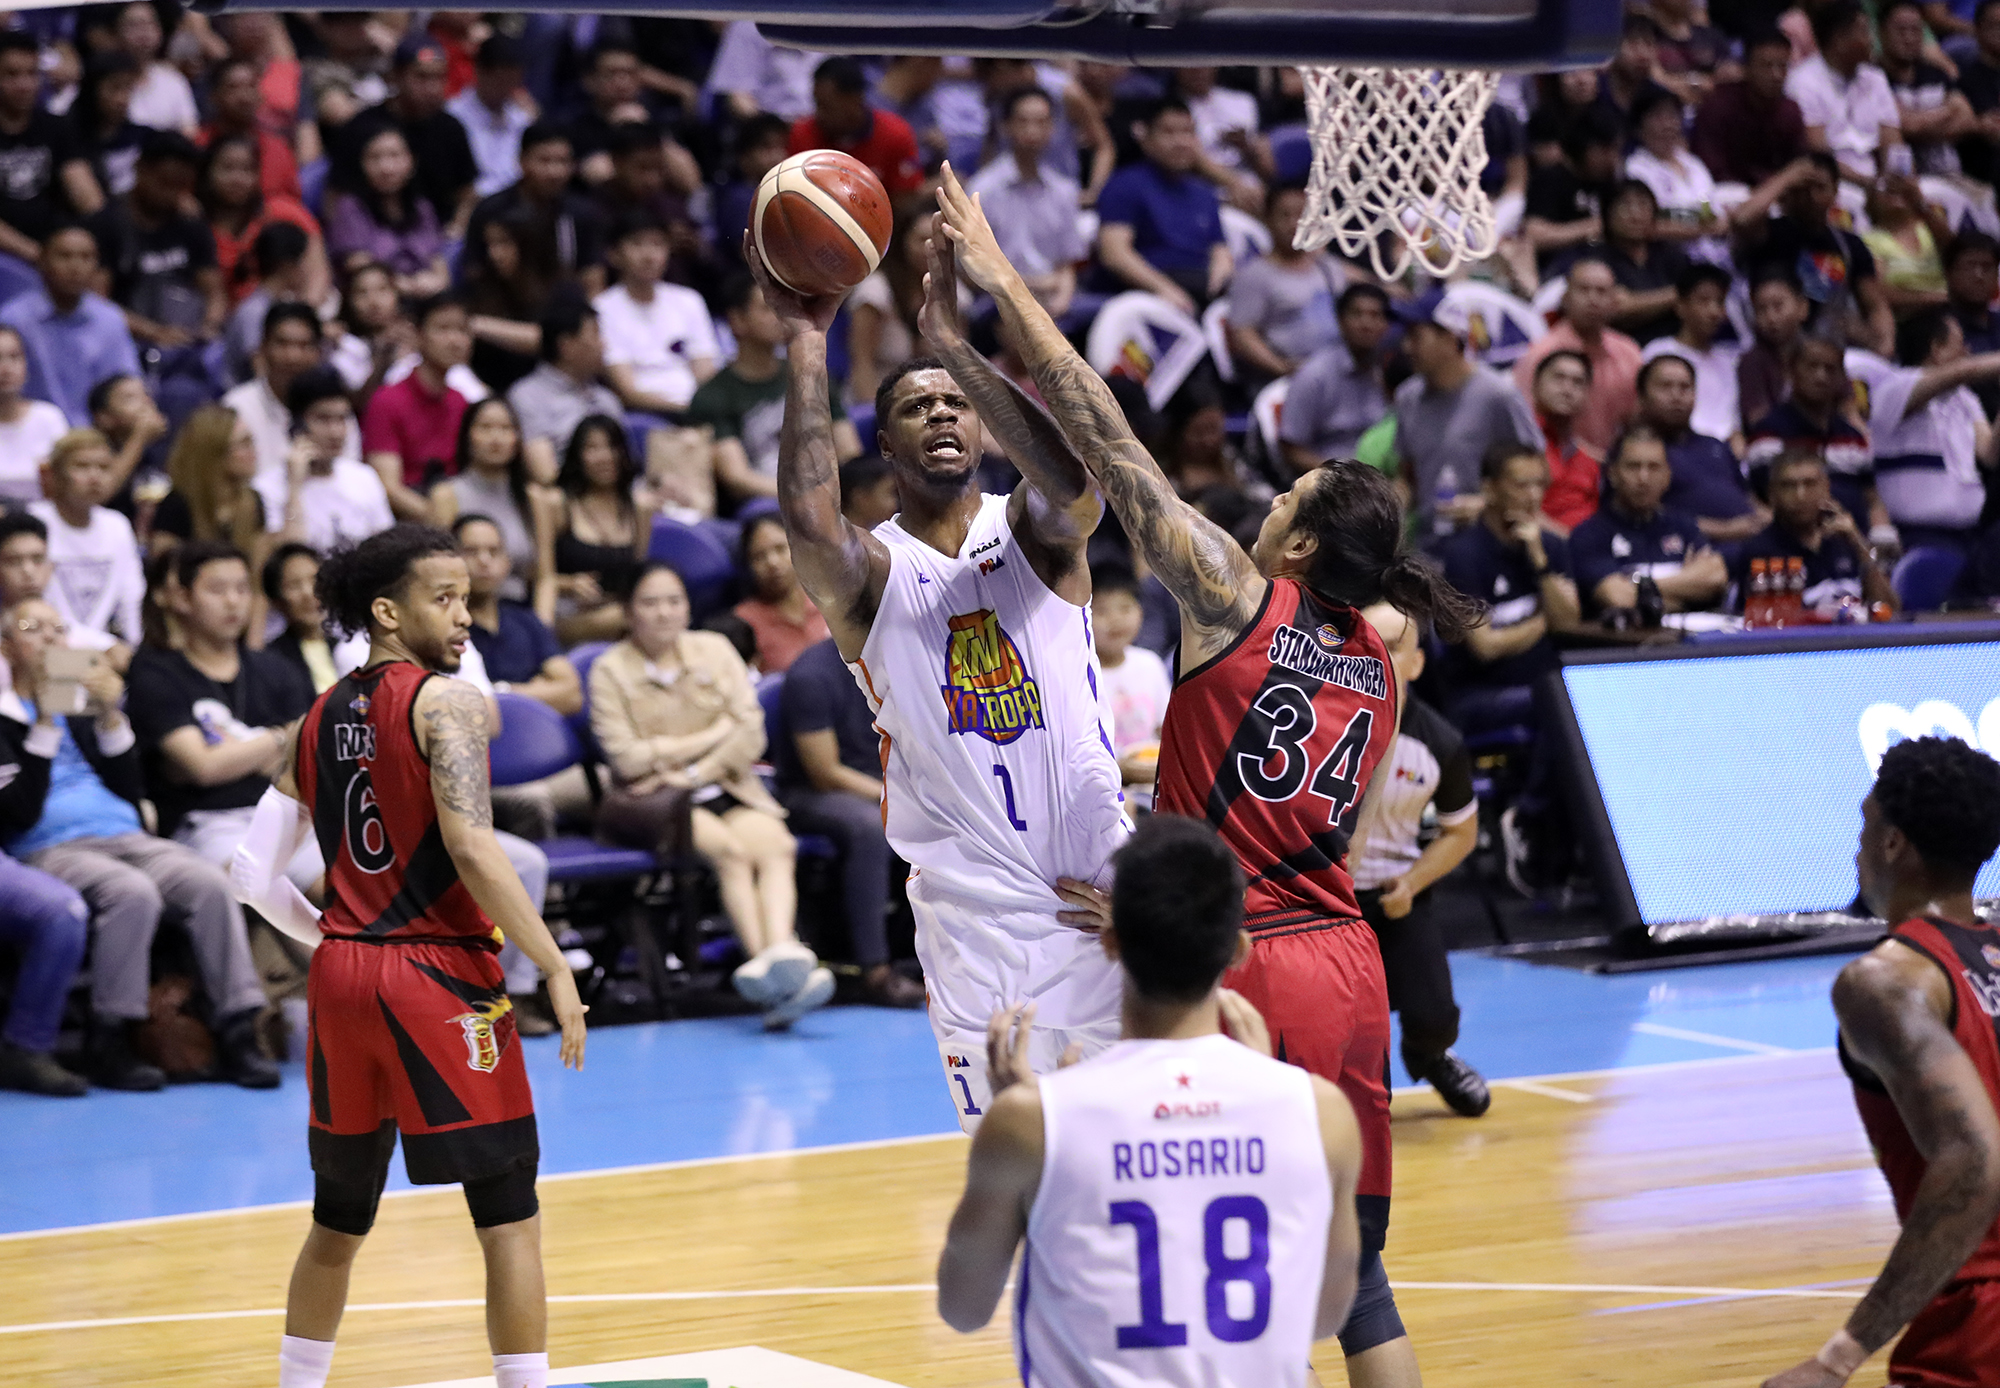 WATCH: Kelly Nabong says Terrence Jones 'flops all the time'